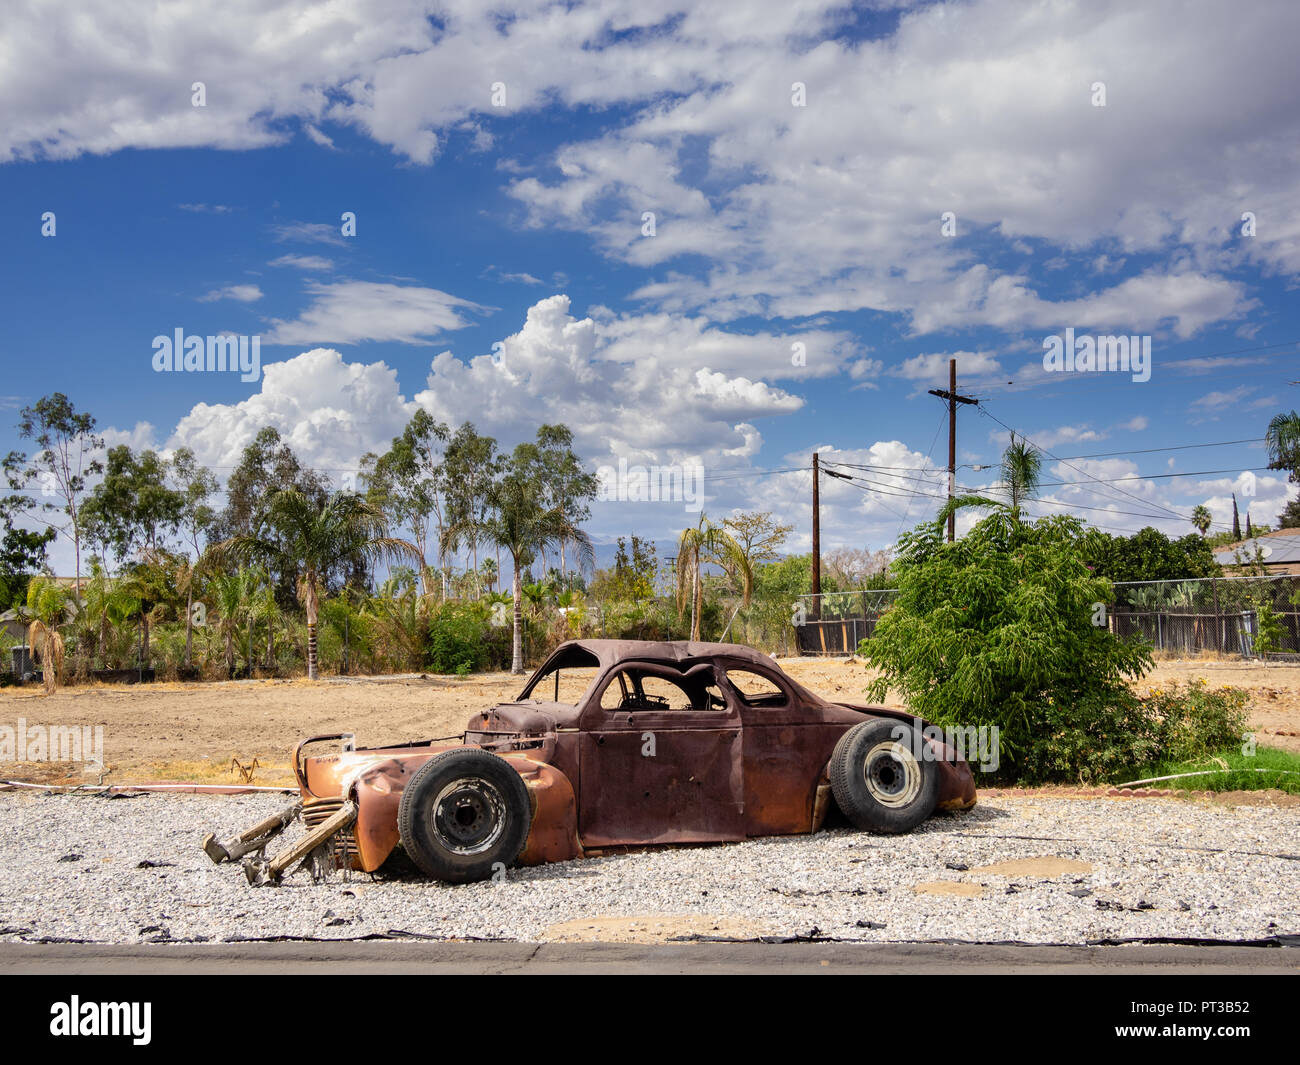 Rusted abandoned car at Wigwam Motel on Route 66 in San Bernardino , California, USA. - Stock Image